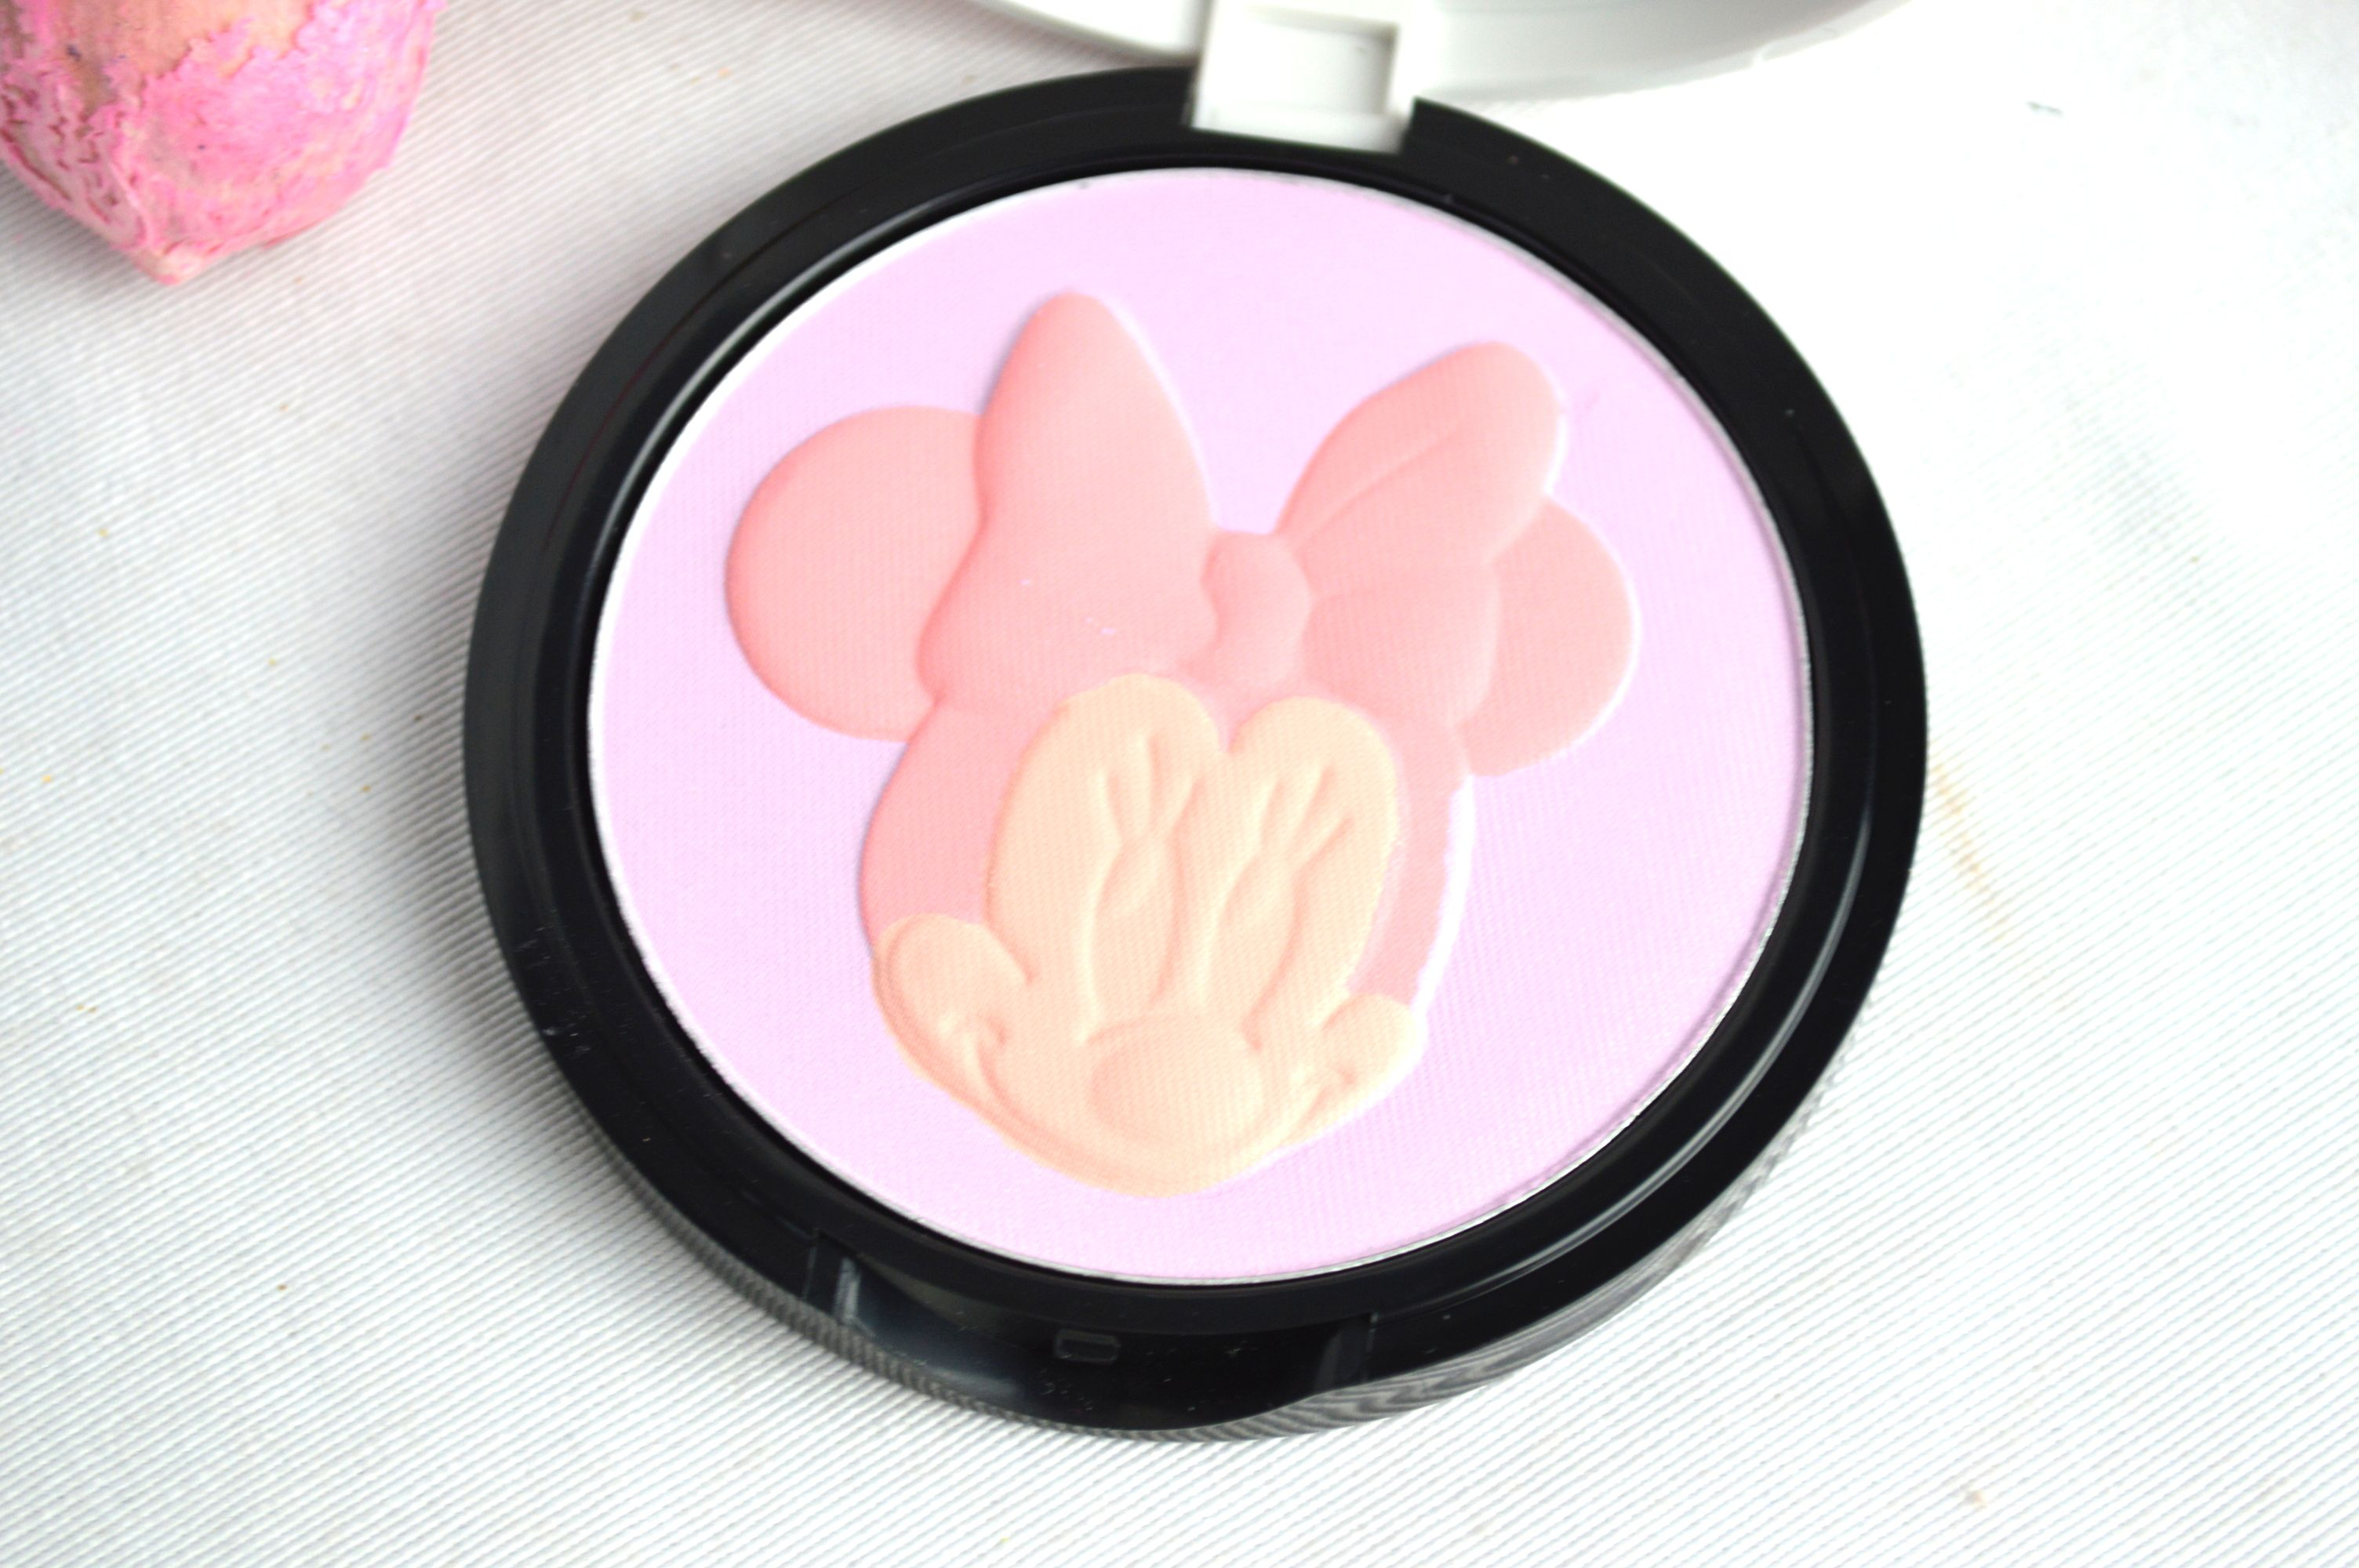 Etude House Minnie Mouse Blush inkl. Verlosung